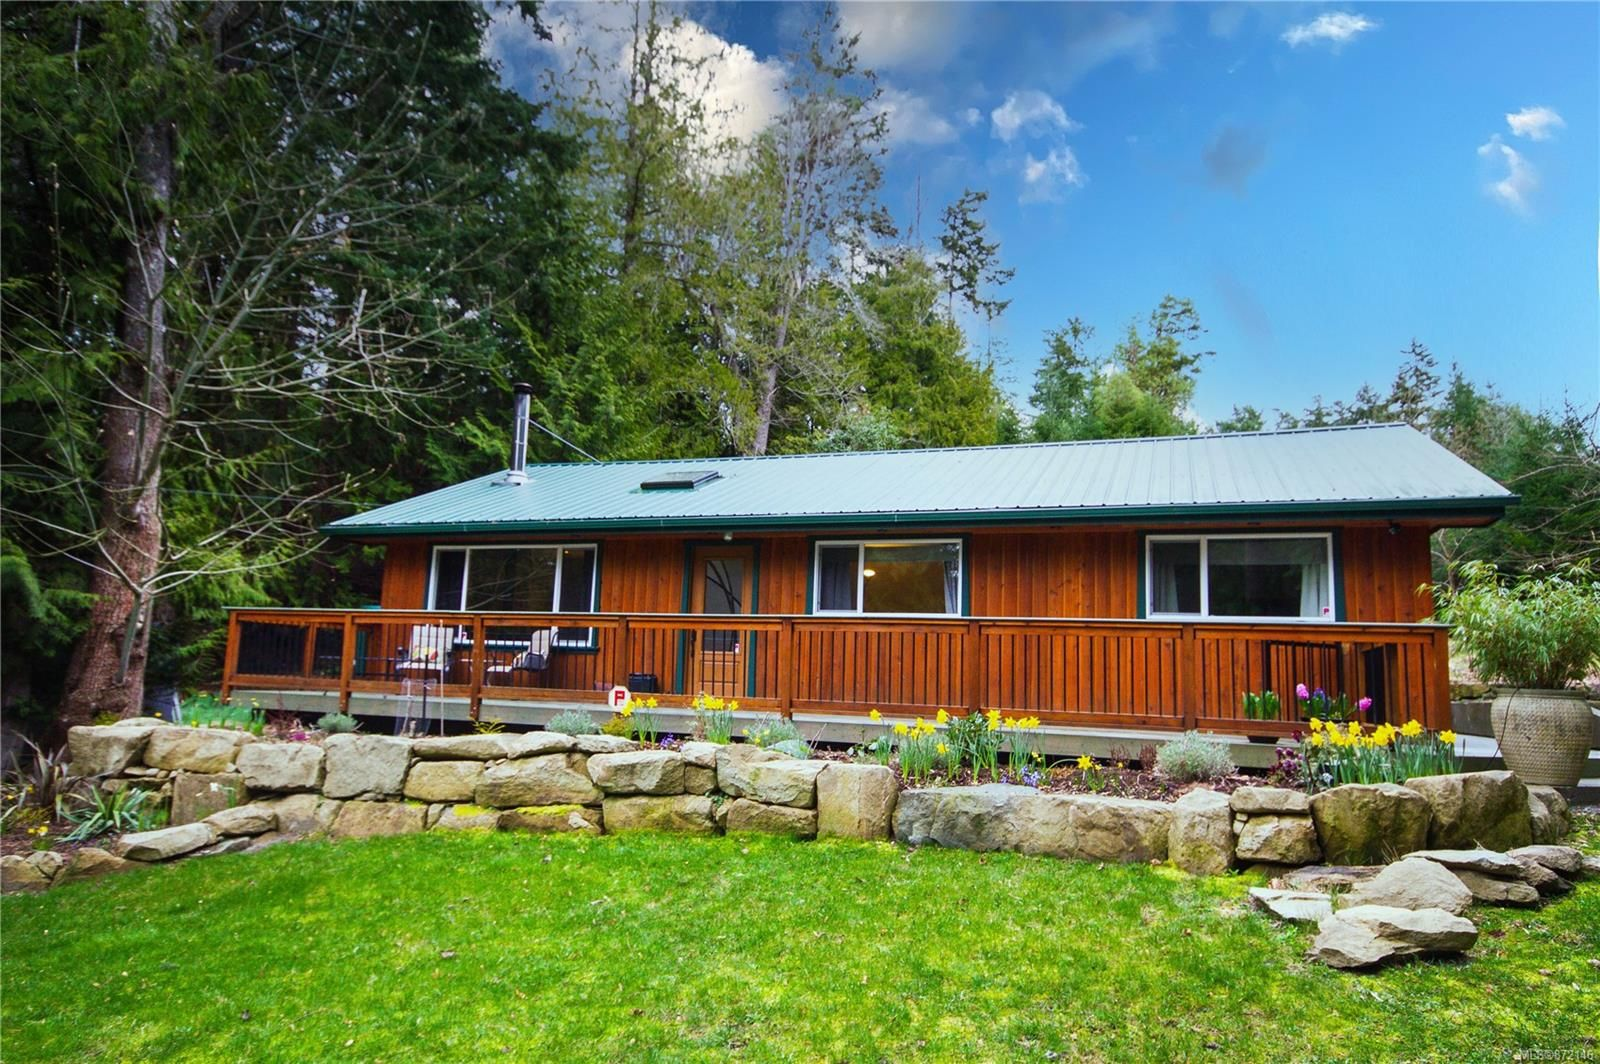 Main Photo: 1264 Harrison Way in : Isl Gabriola Island House for sale (Islands)  : MLS®# 872146